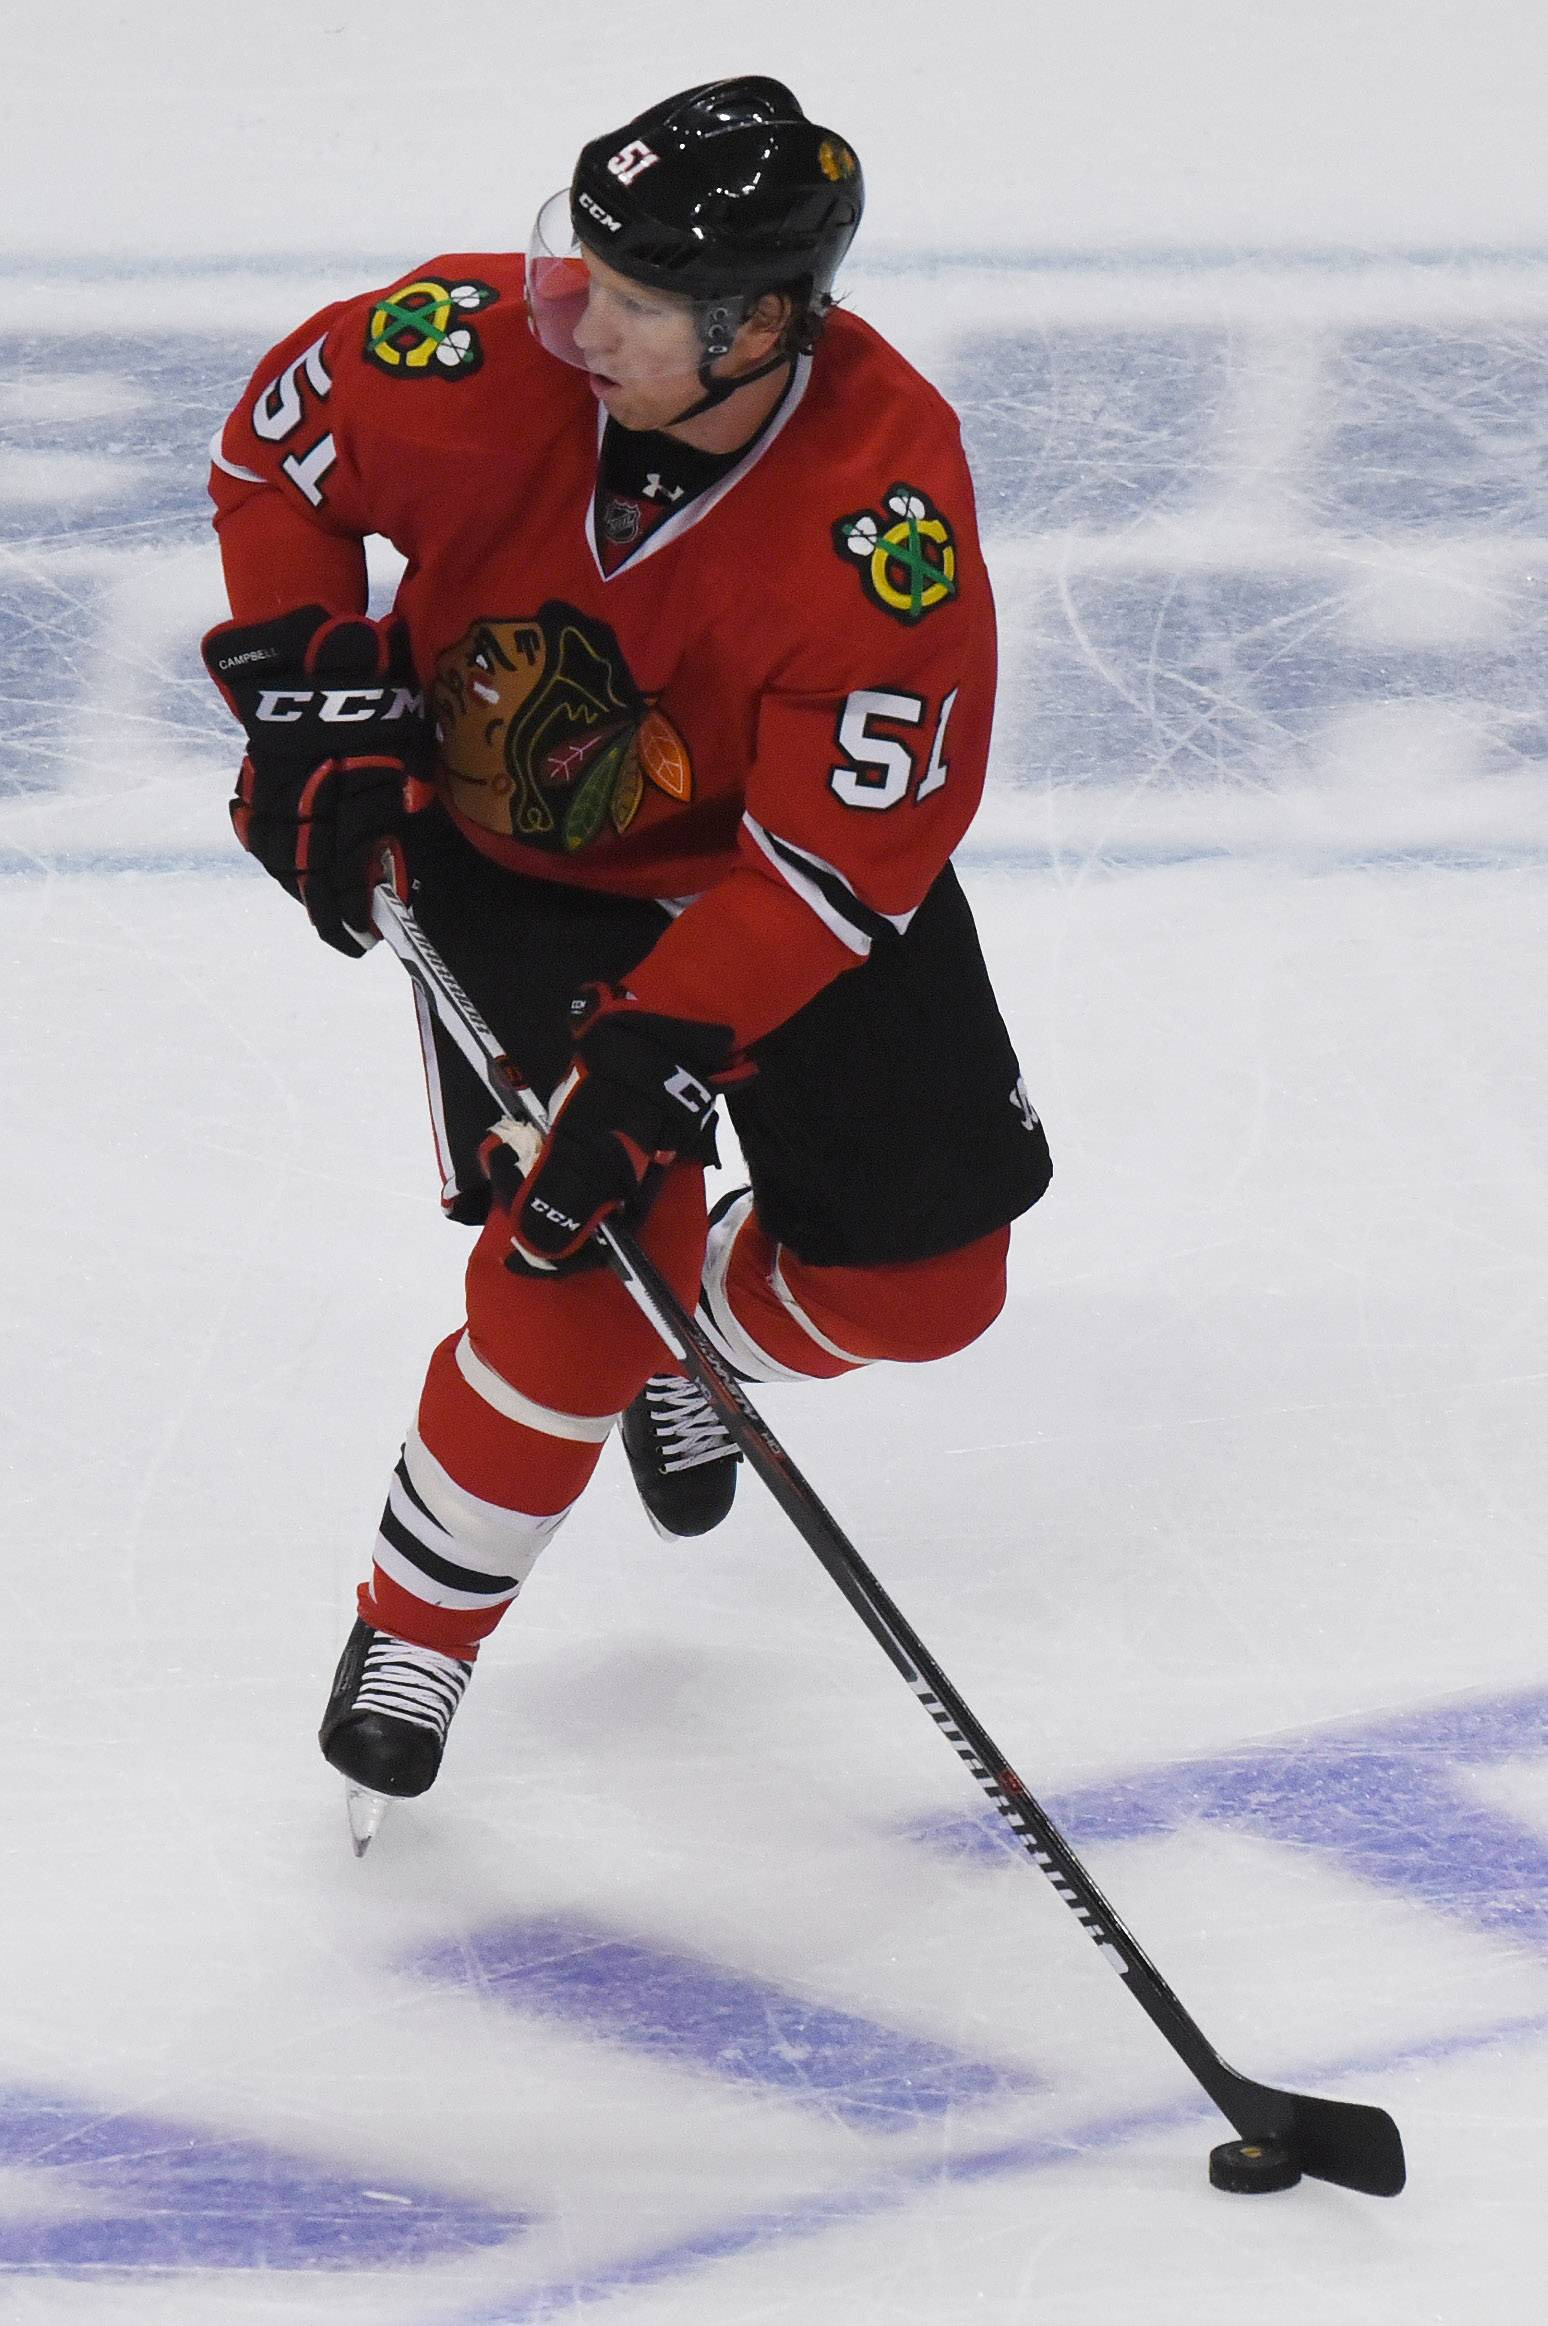 Chicago Blackhawks defenseman Brian Campbell has decided to retire after 17 seasons in the NHL.